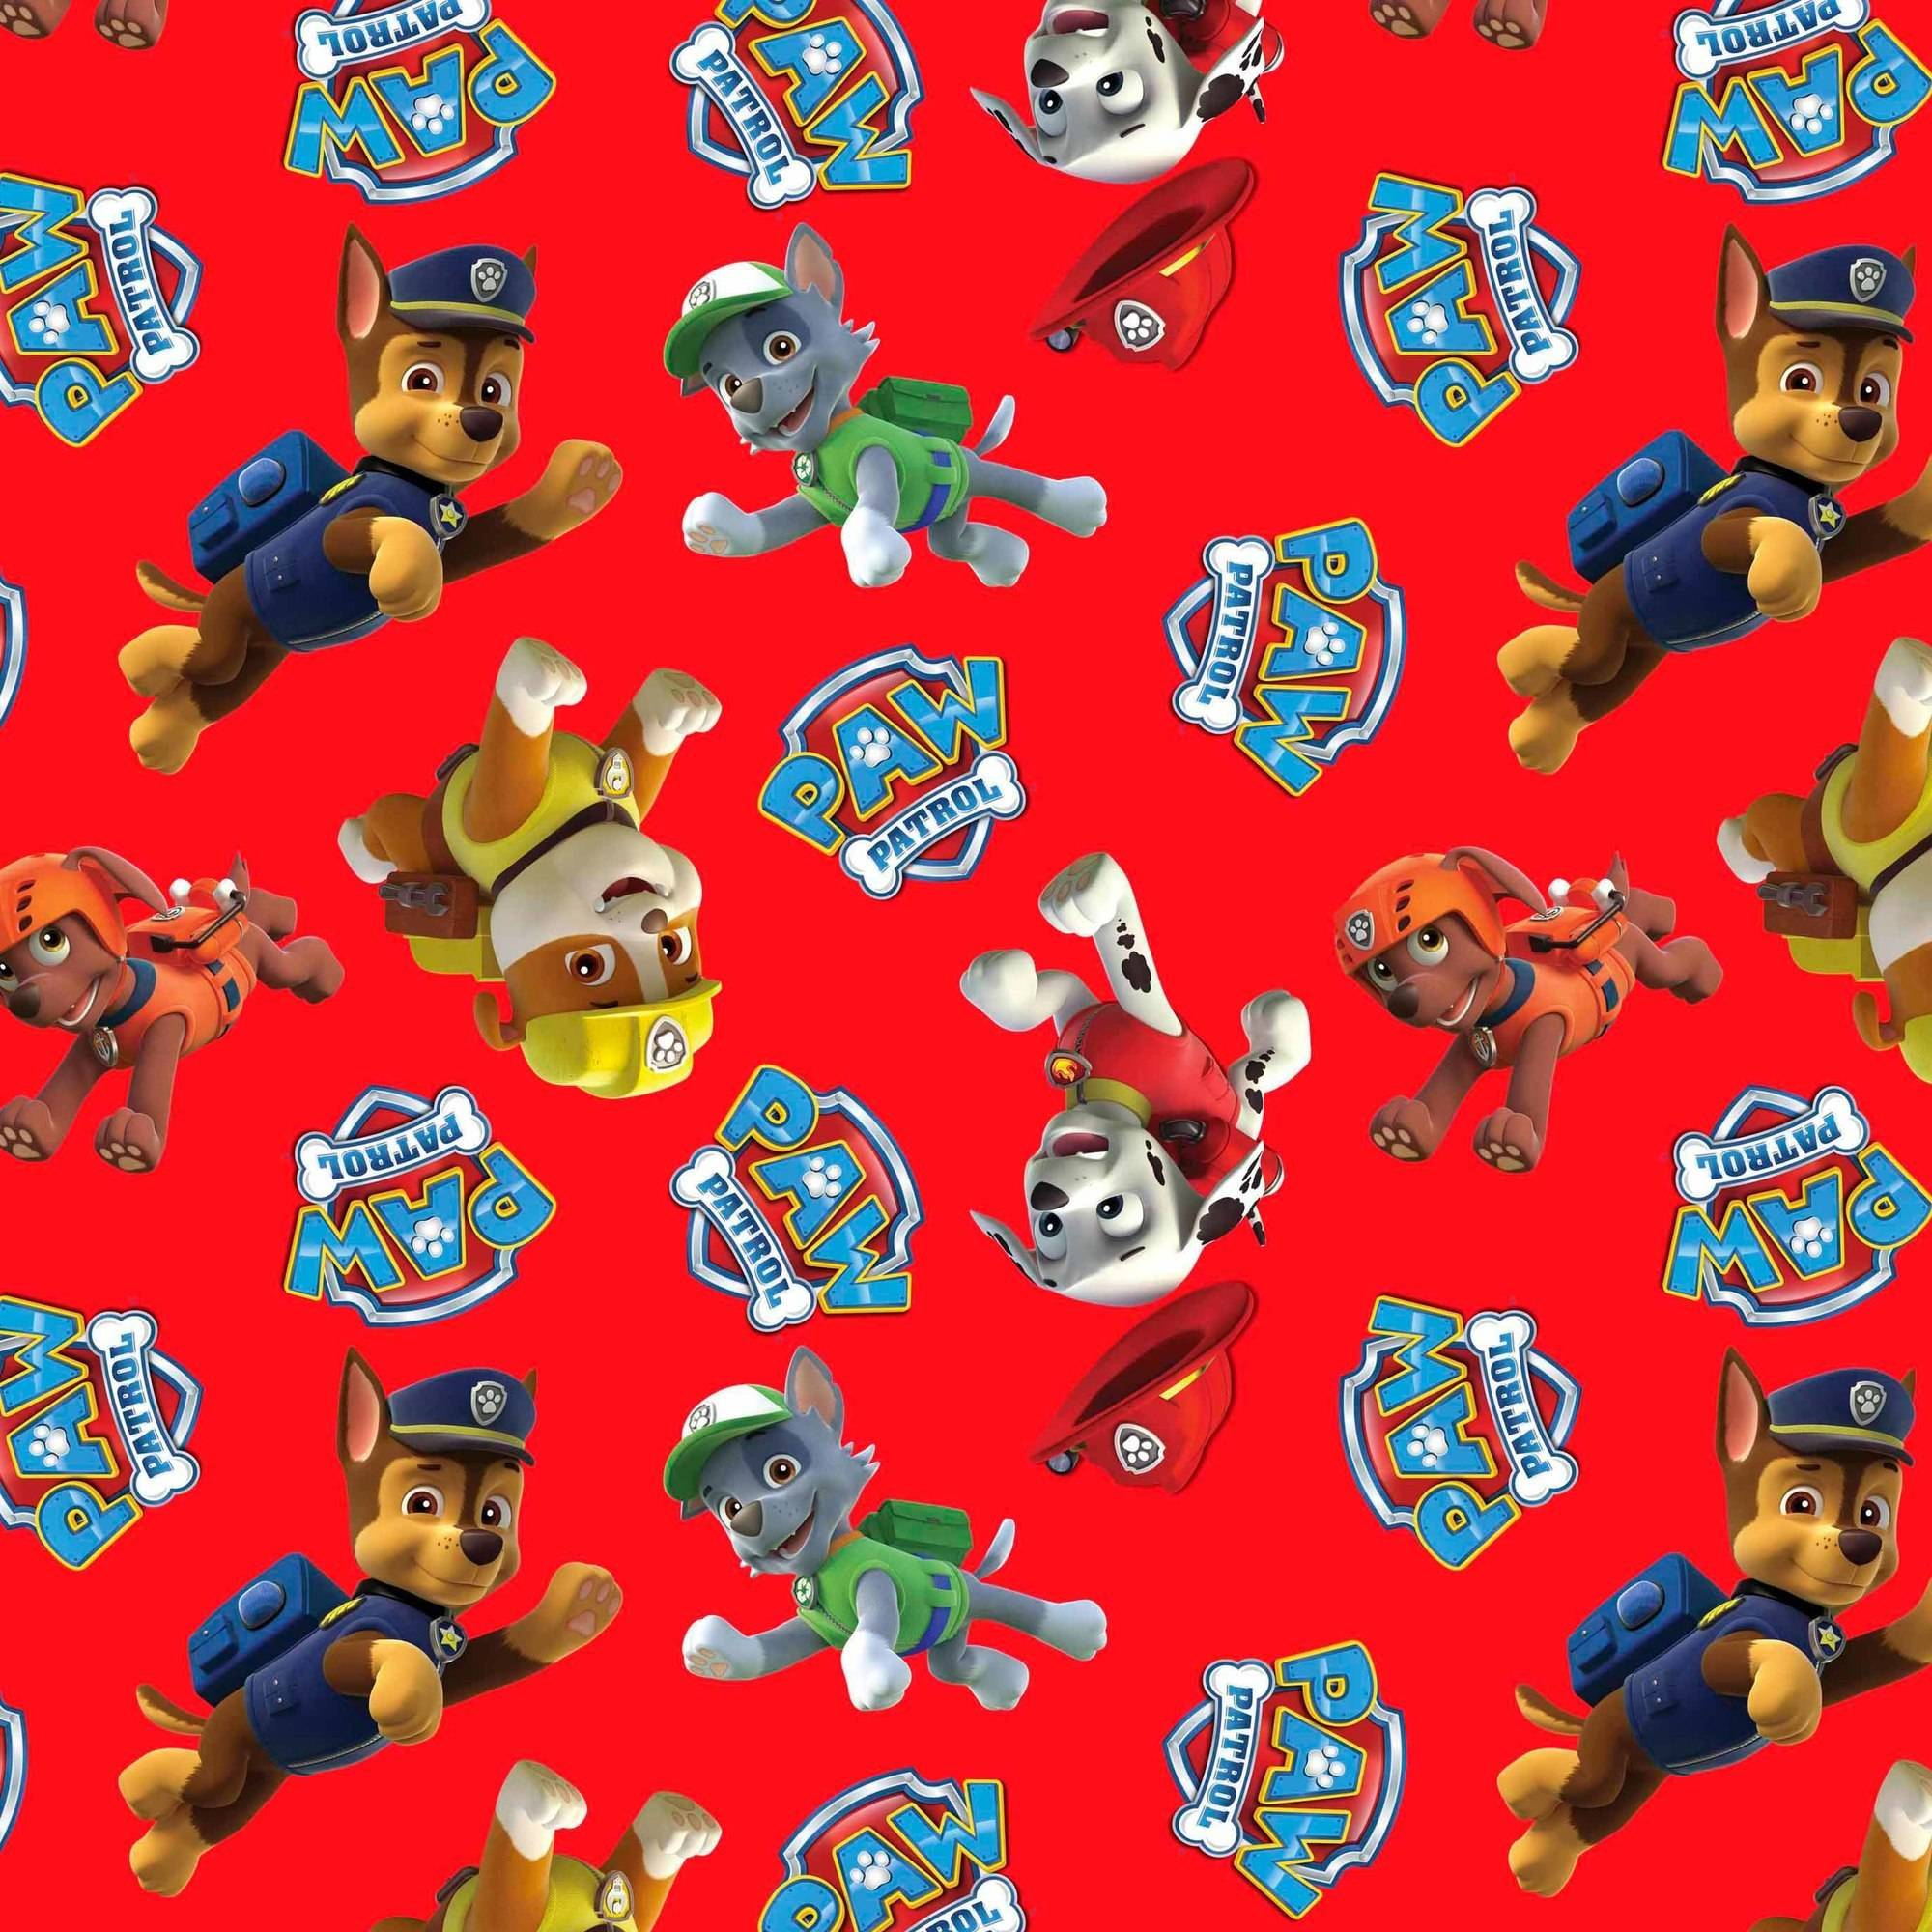 Nickelodeon Polyester Fleece Anti-Pill Paw Patrol Rescue Fabric, per Yard